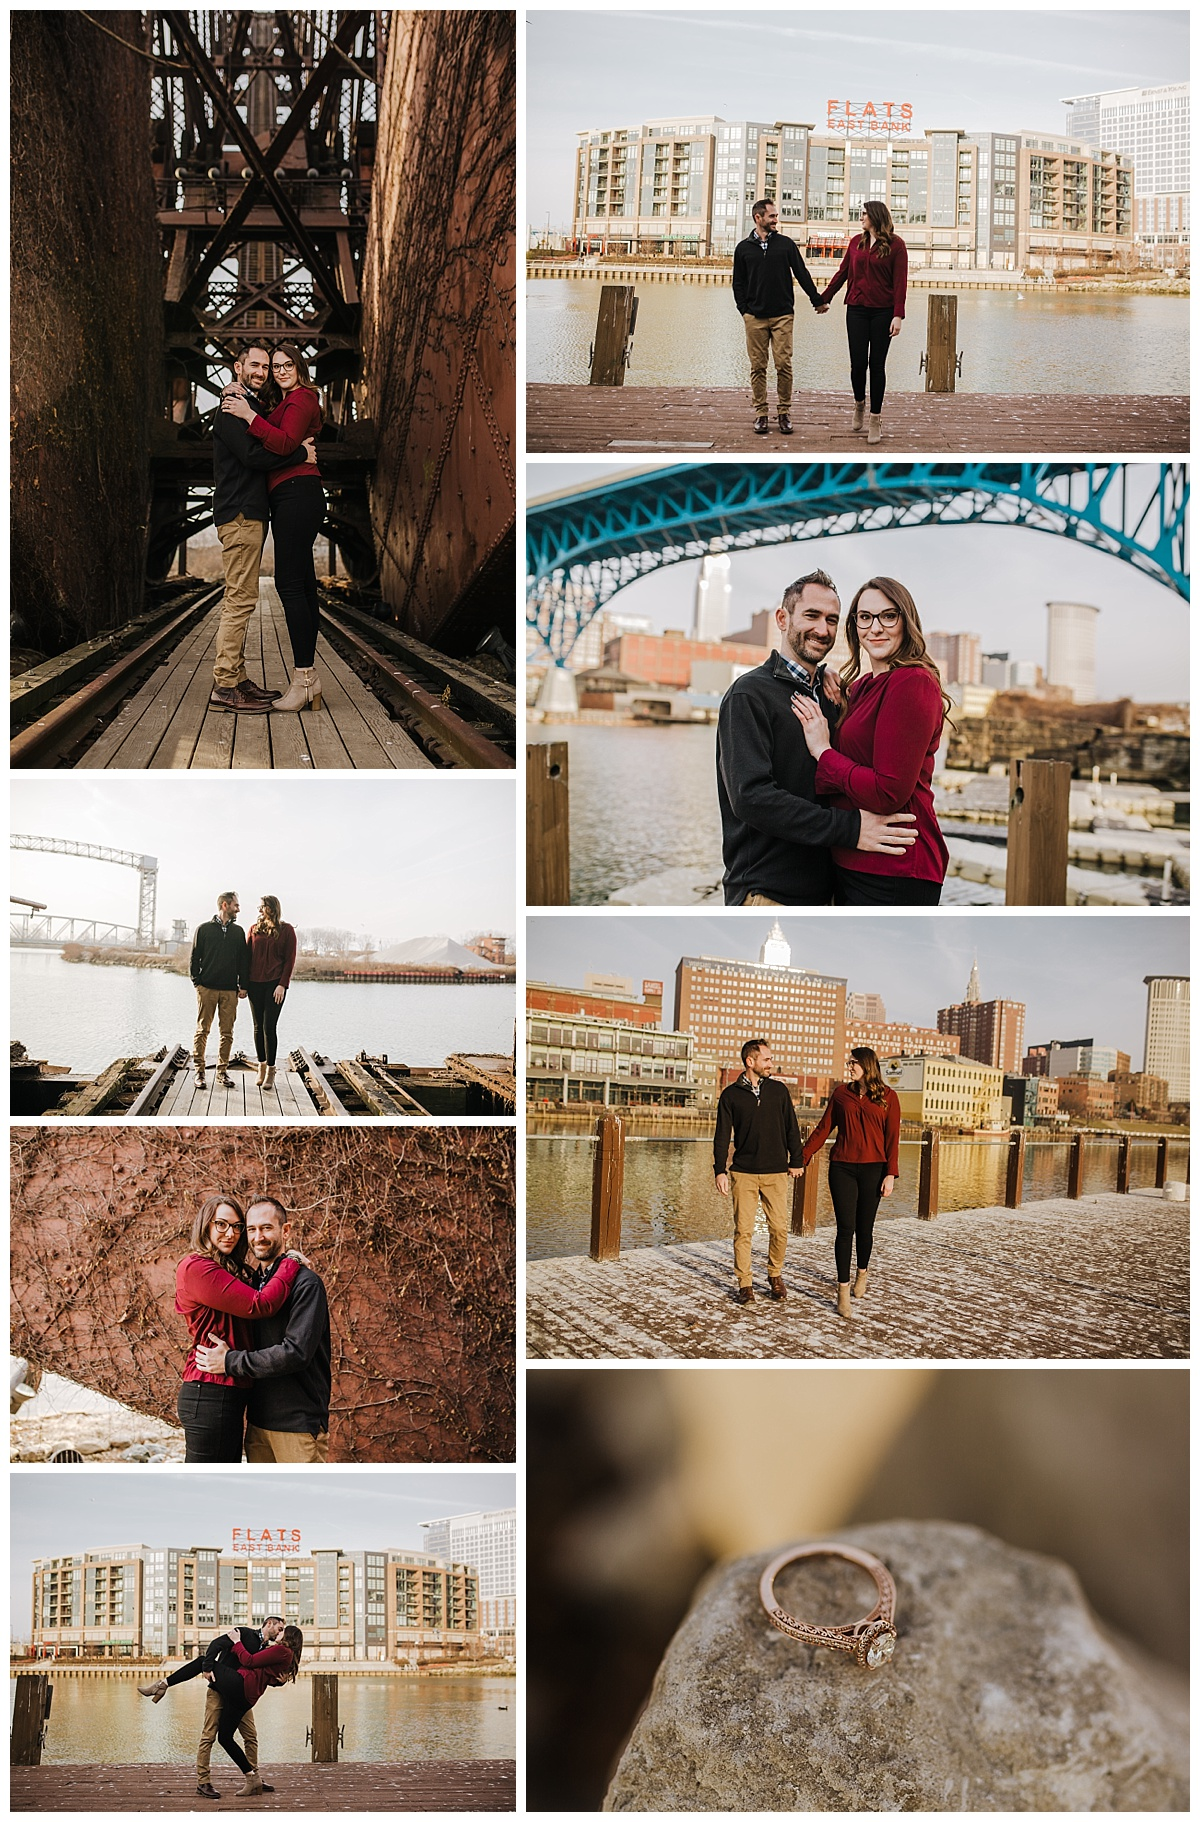 Cleveland Flats Engagement Session - Rachel & Matt - Lindsay Dawn Photography